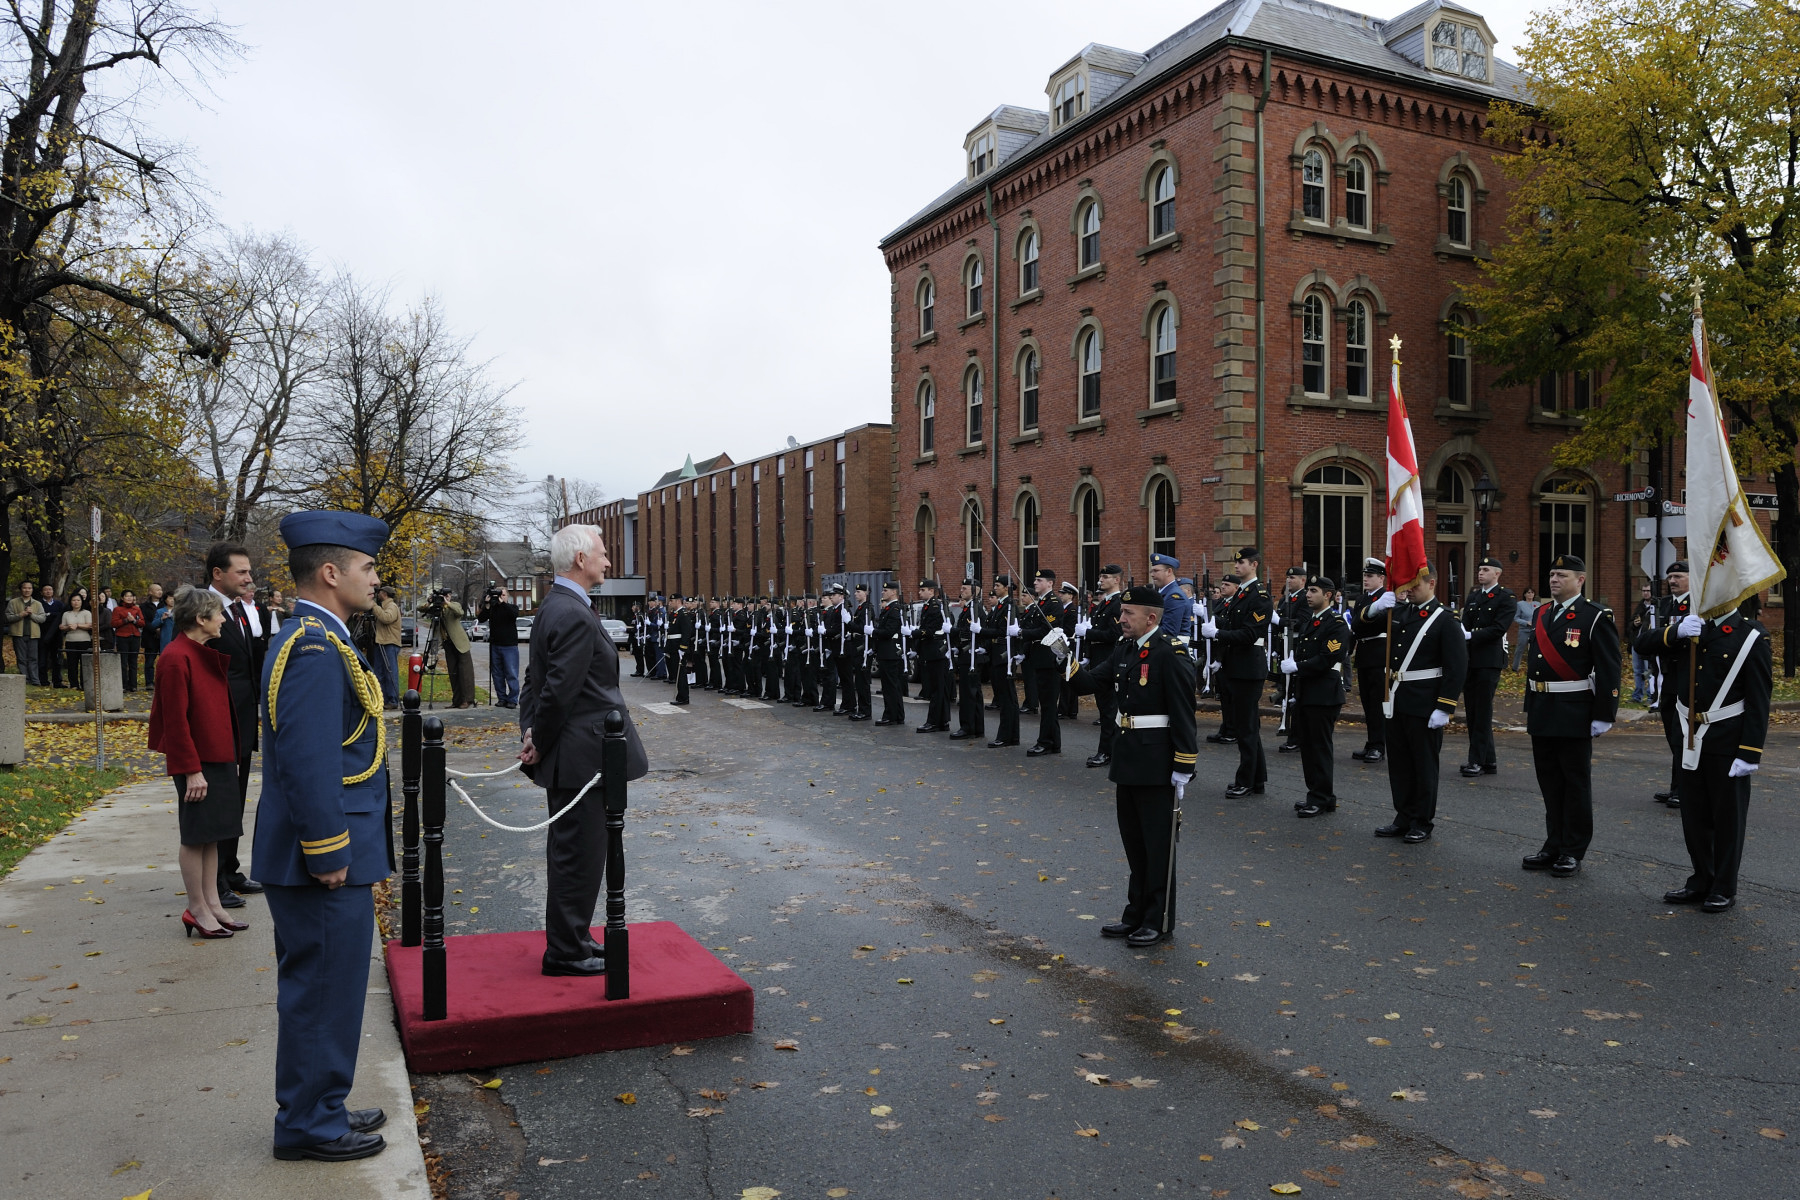 During the official welcoming ceremony at Province House, the Governor General received military honours, which included the 21-Gun Salute and the inspection of the guard of honour.